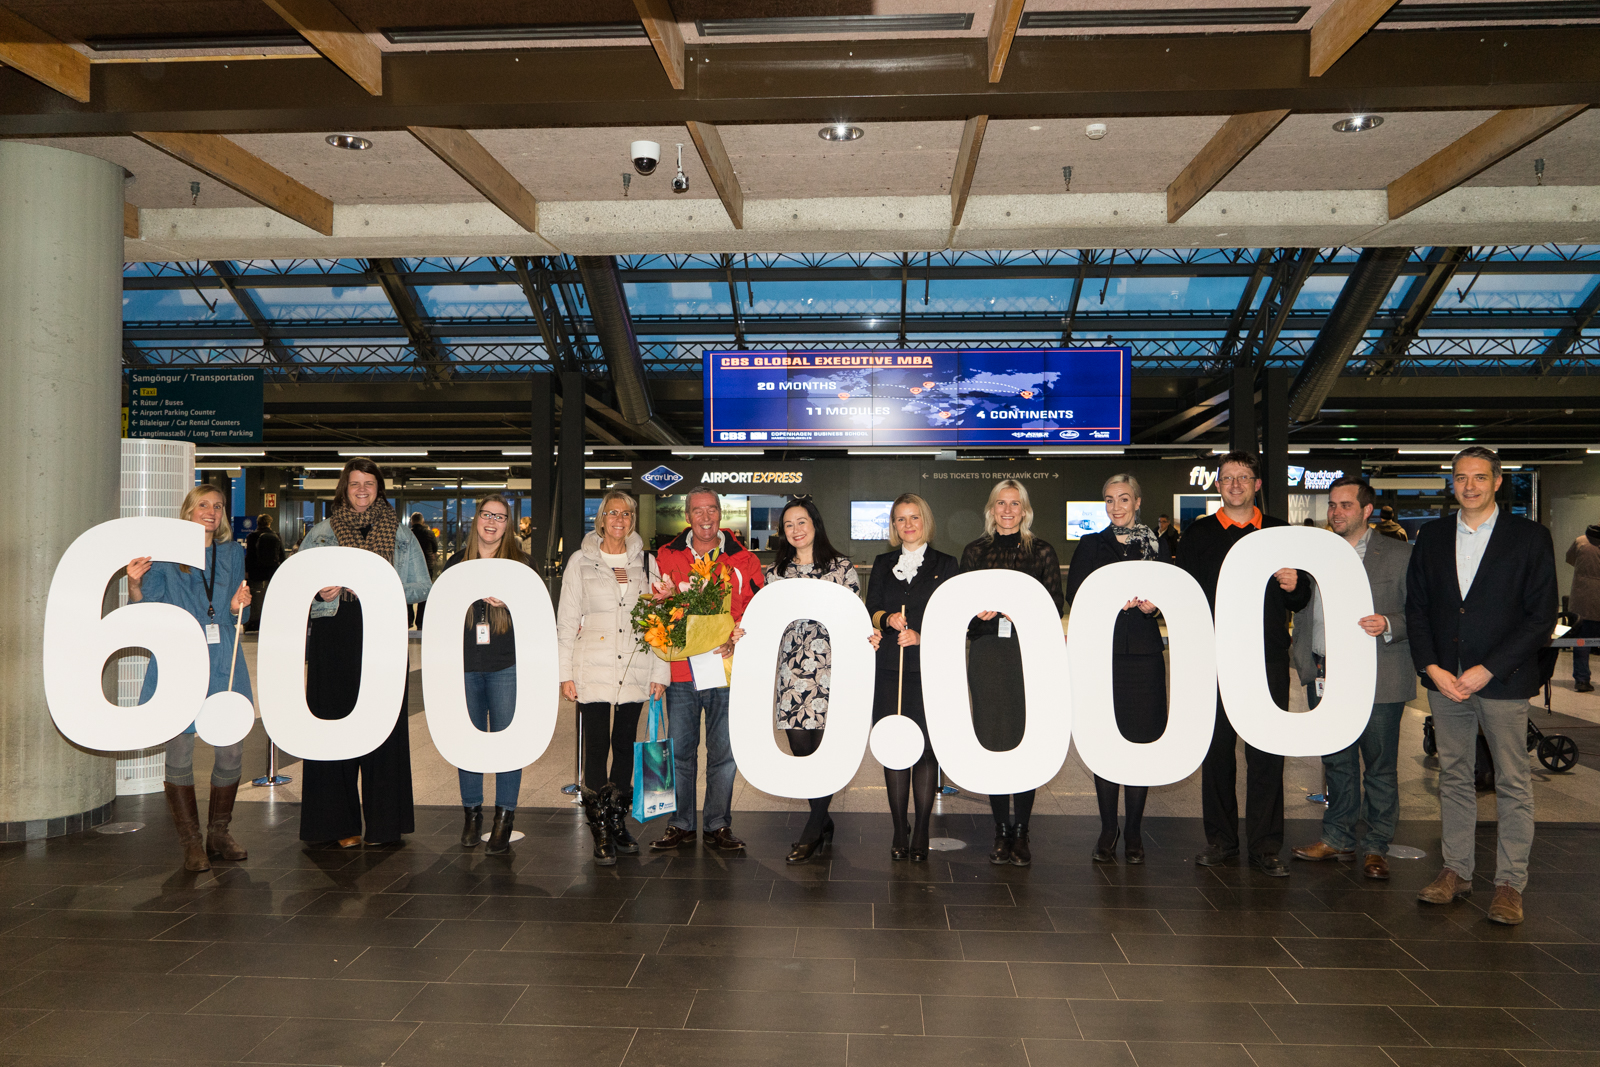 Over six million passengers have passed through Keflavik Airport this year